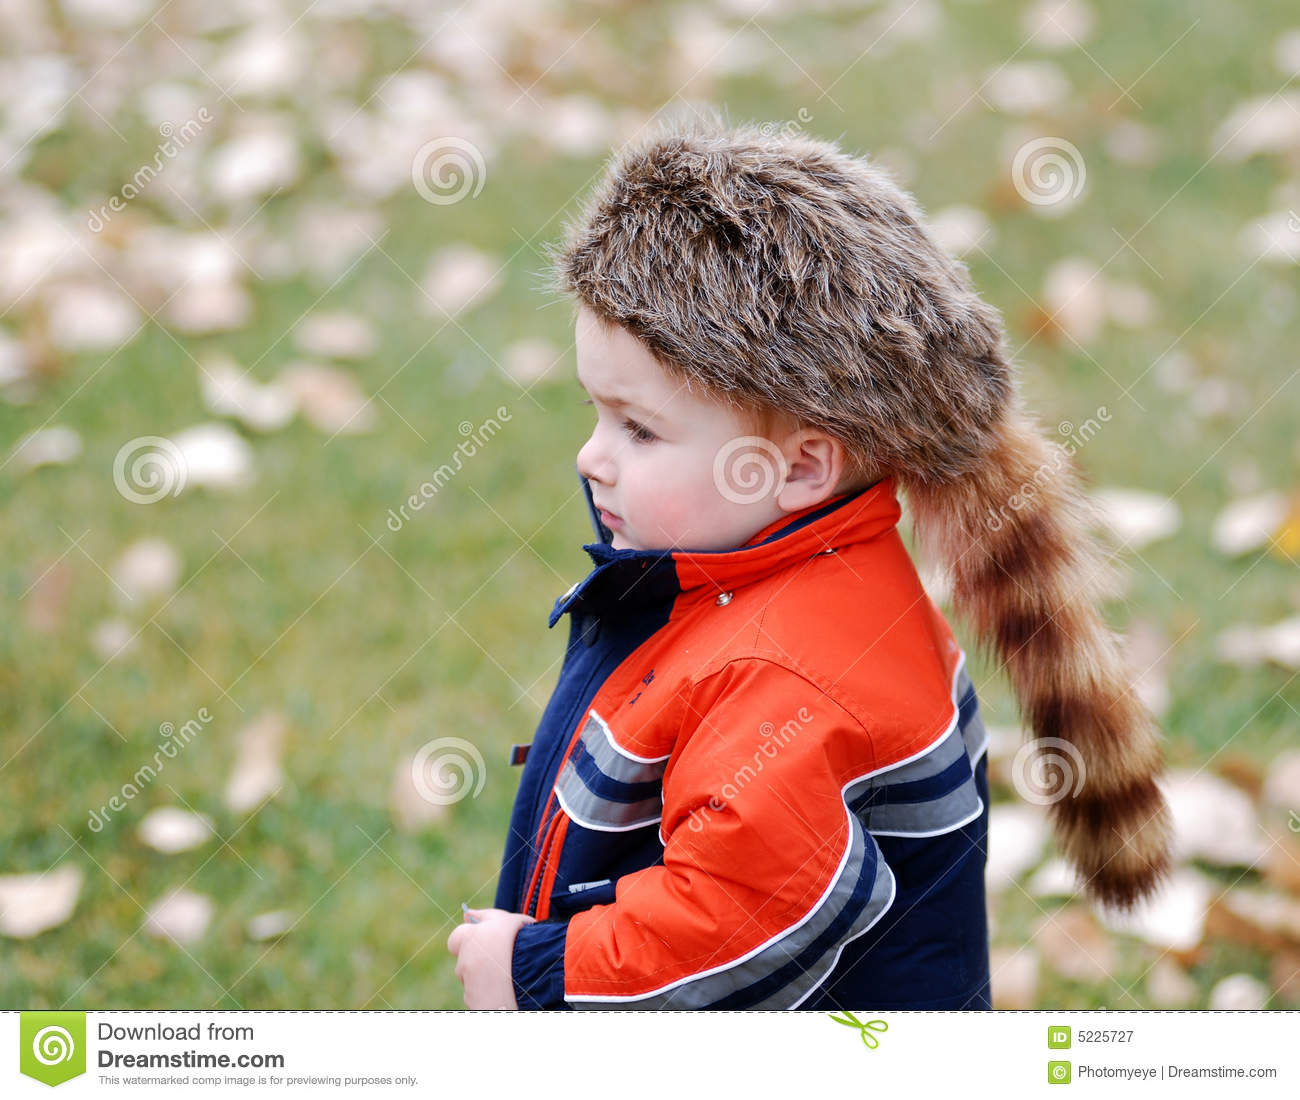 Child with coonskin cap stock image. Image of child 53a20d1e349